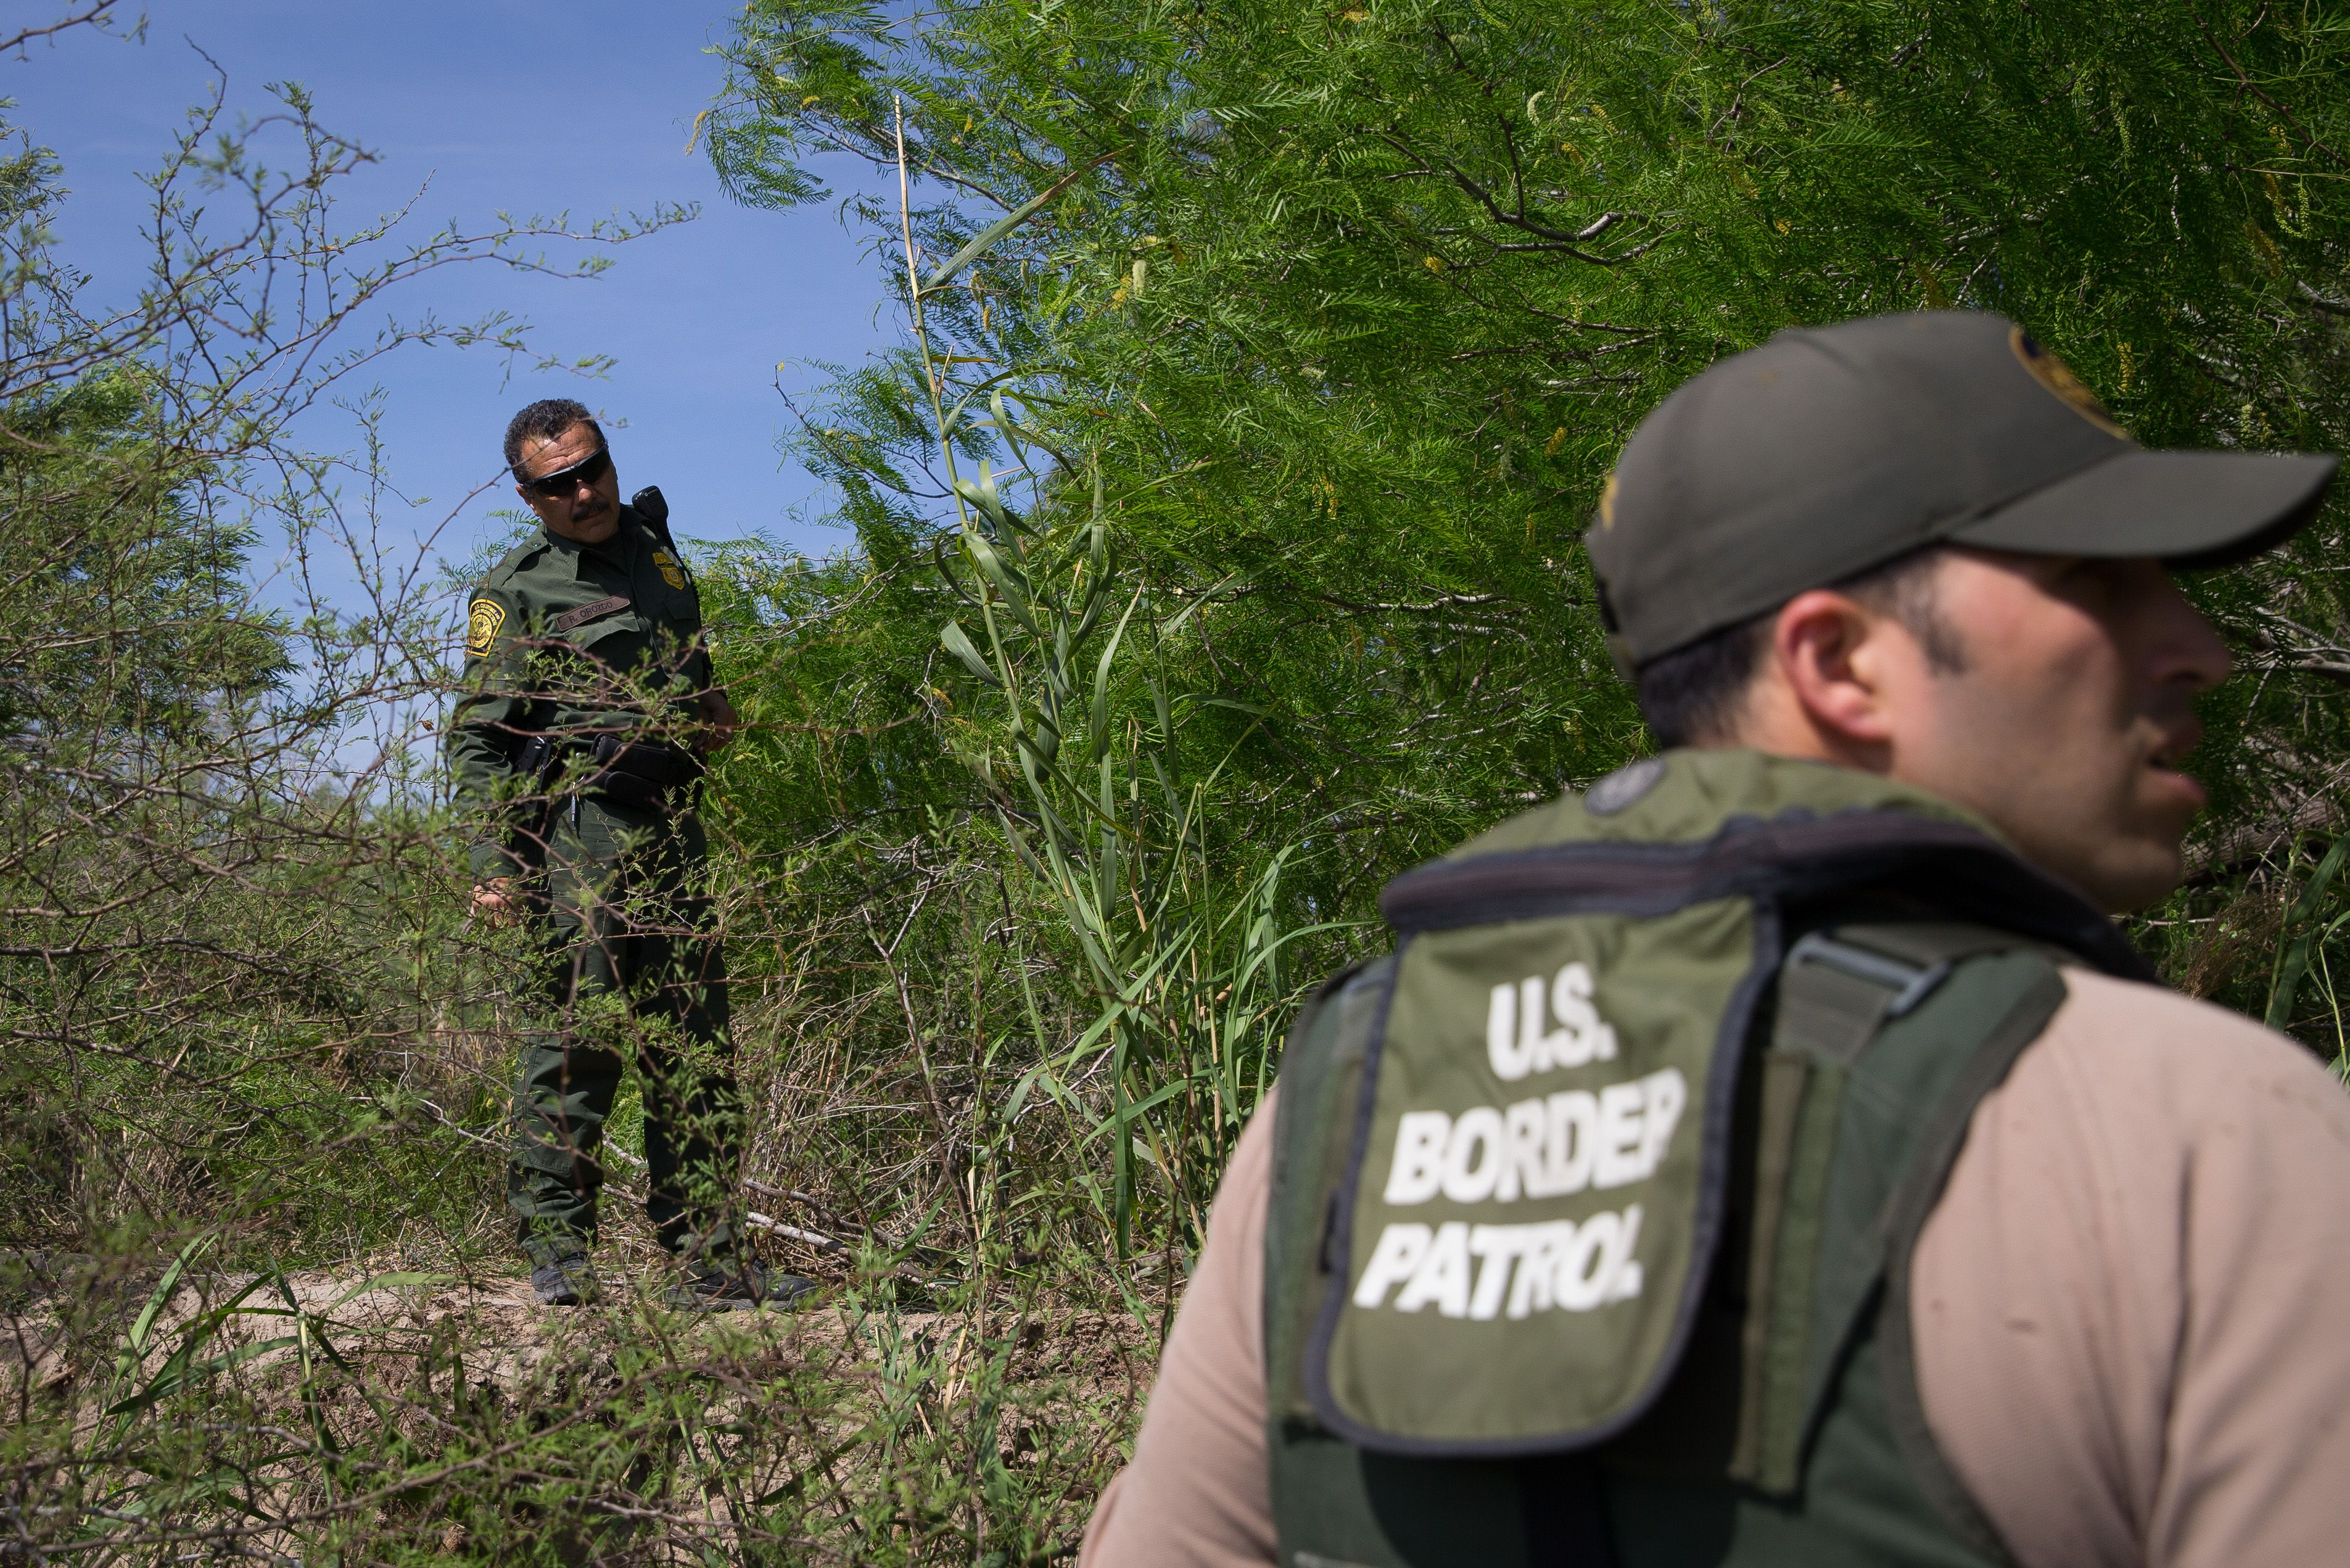 Border Patrol agents search the Rio Grande River for illegal immigrants crossing the border from Mexico into the United States near McAllen, Texas on Monday, March 26, 2018.